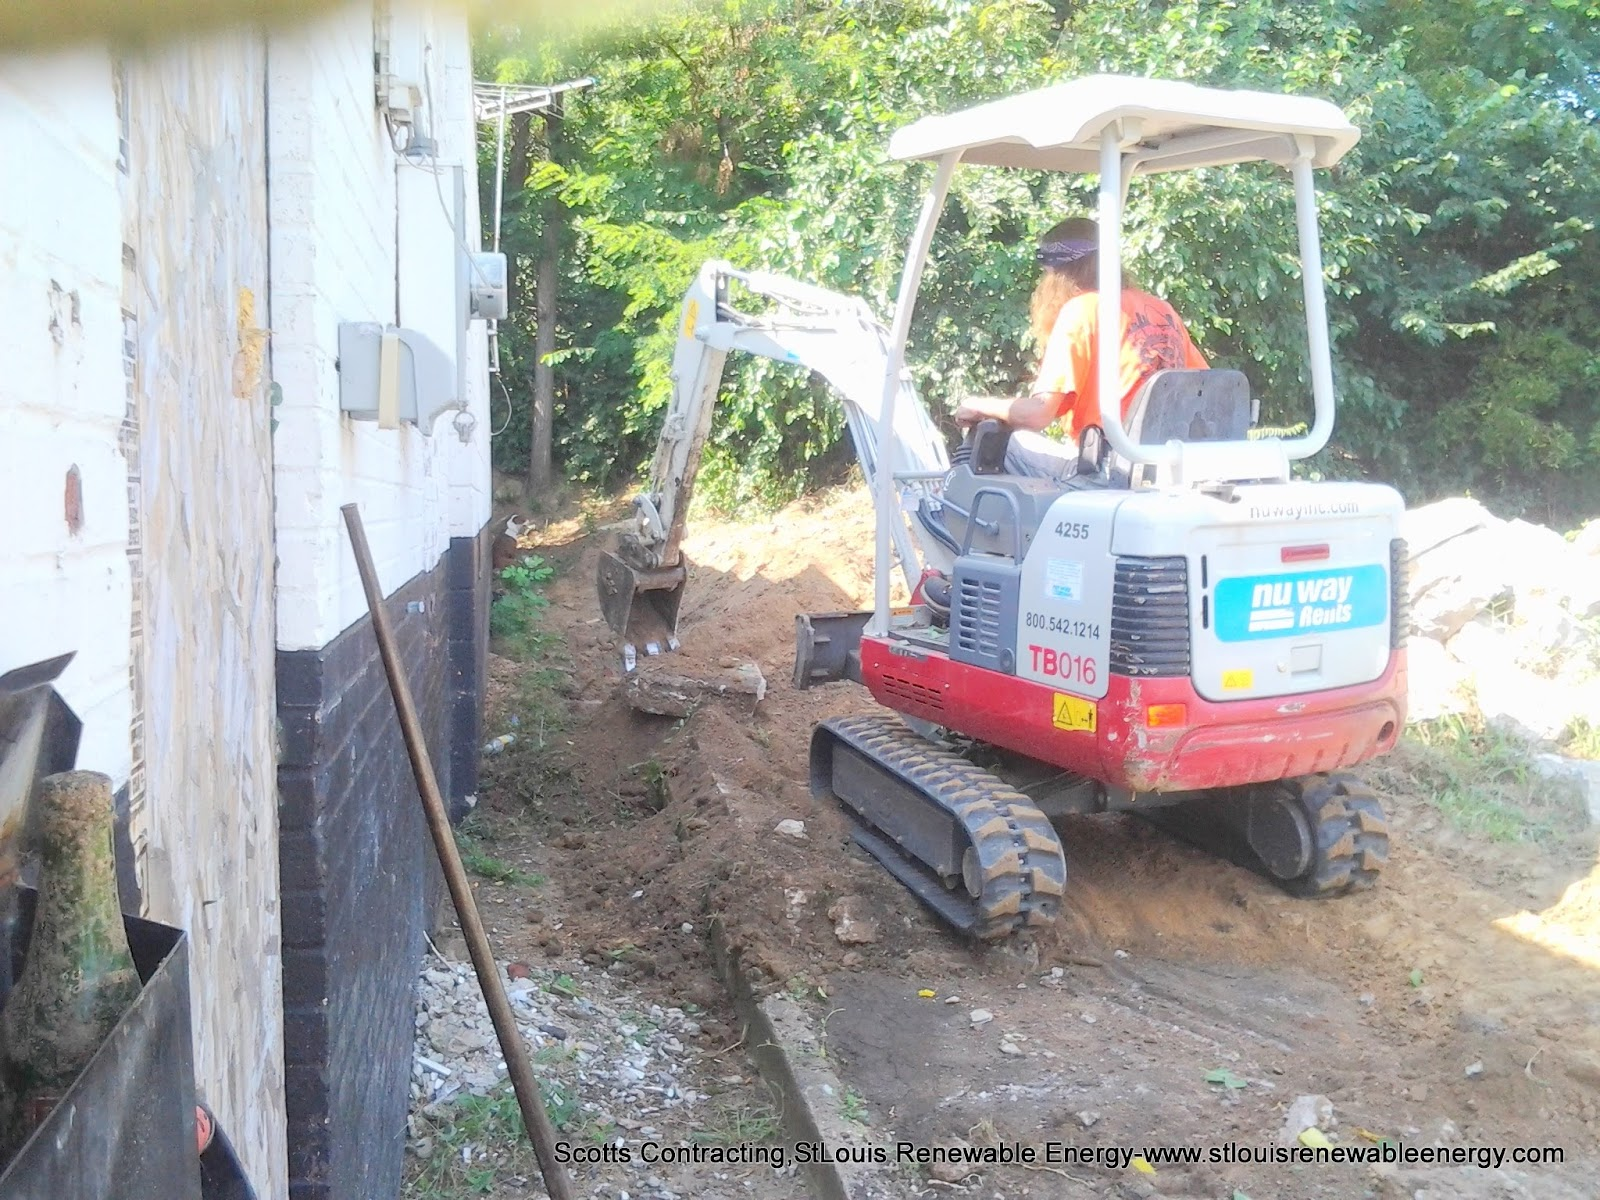 Removing the Existing sidewalk and excavating the dirt using a small track loader- the perfect size for working in confined areas such as this.